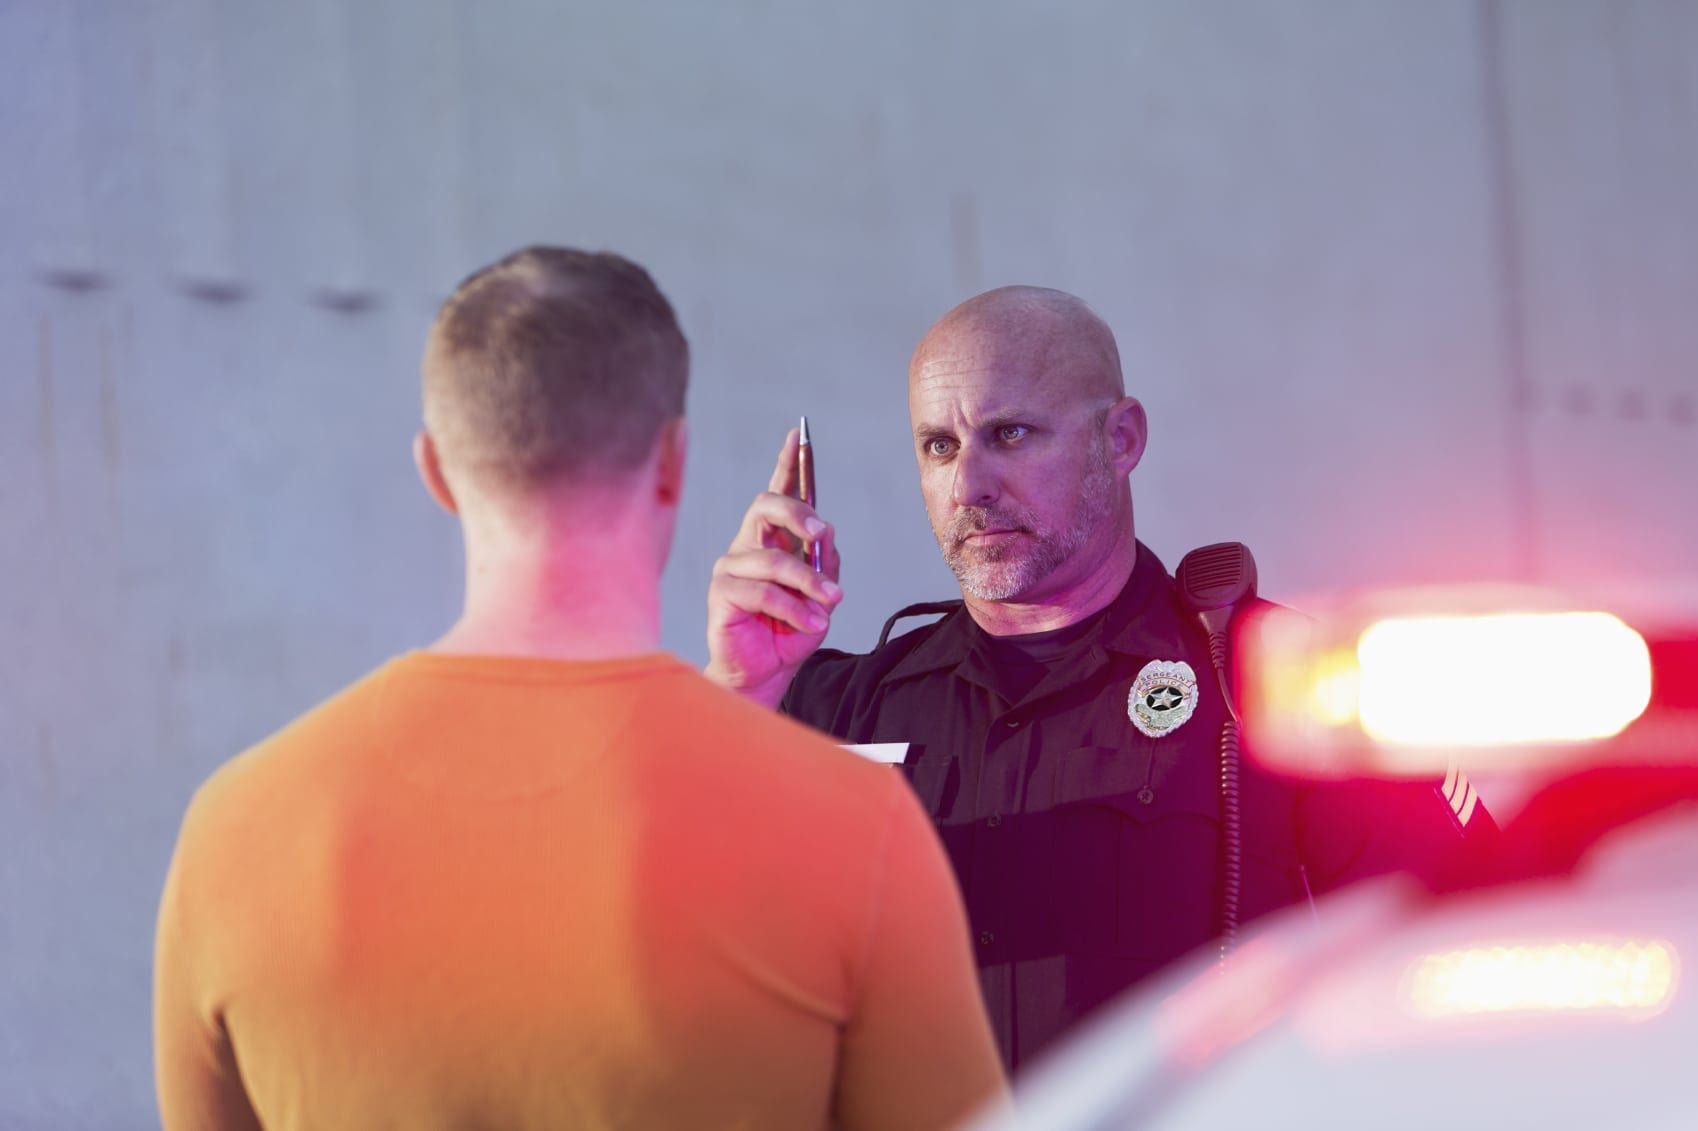 Police Officer Giving Sobriety Test To Drunk Driver Stock Photo